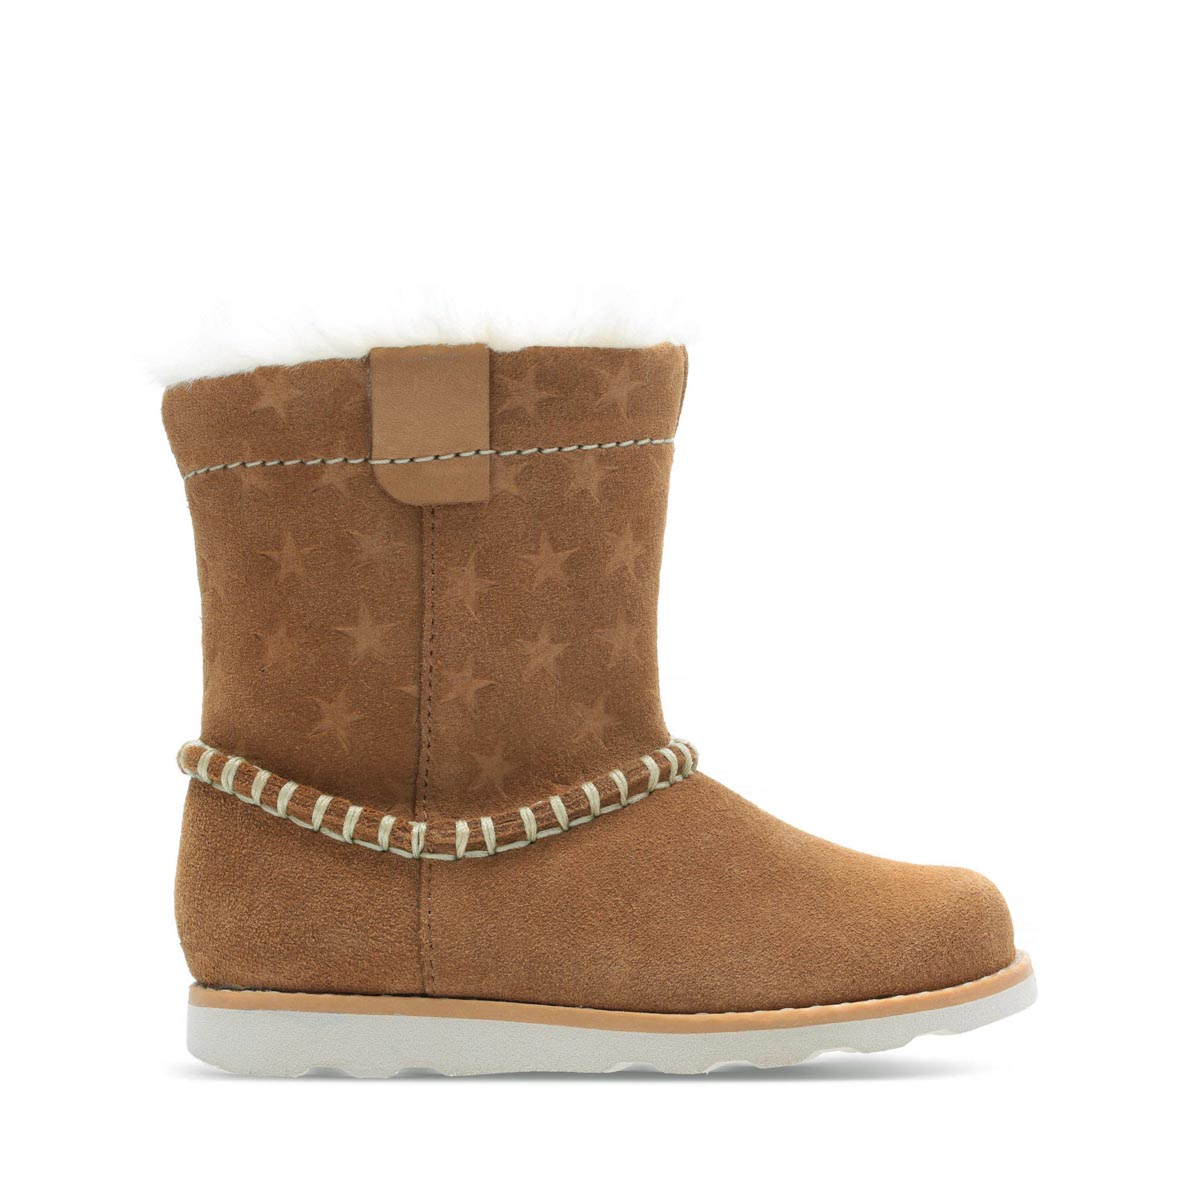 Clarks Crown Piper T F Fit Tan Suede